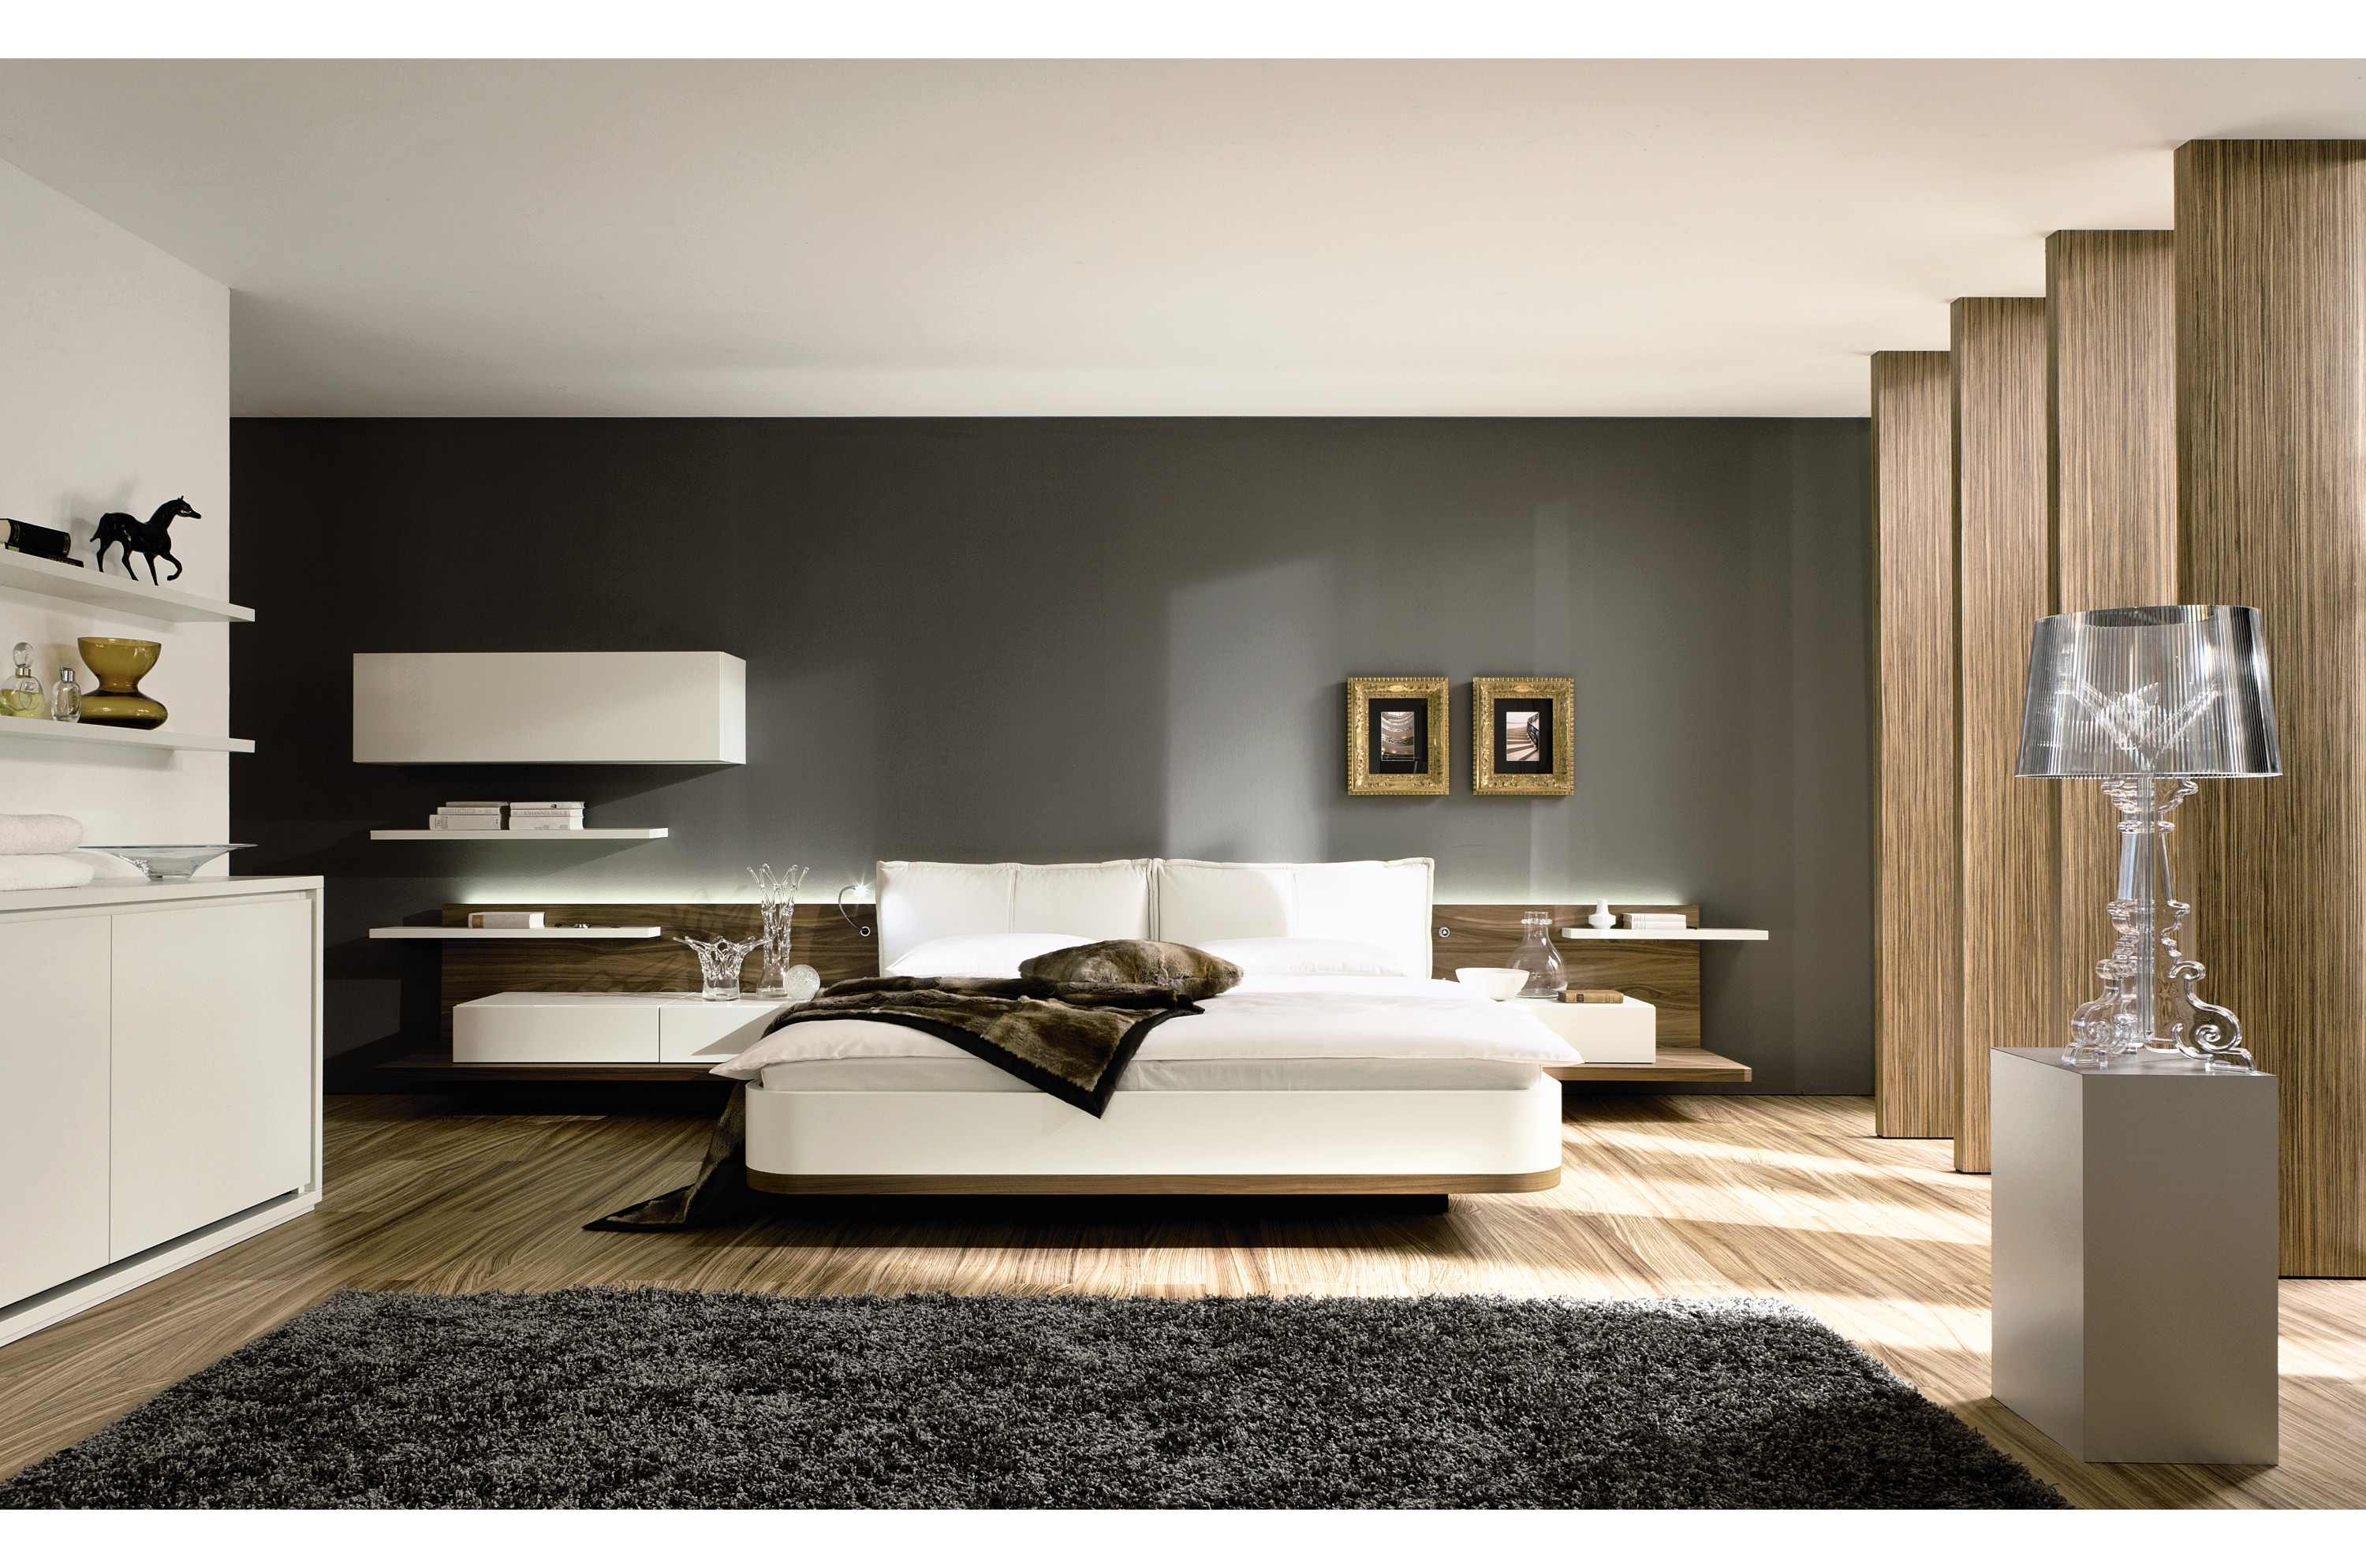 Modern bedroom innovation bedroom ideas interior design and many kodok demo - Interior designbedroom in ...